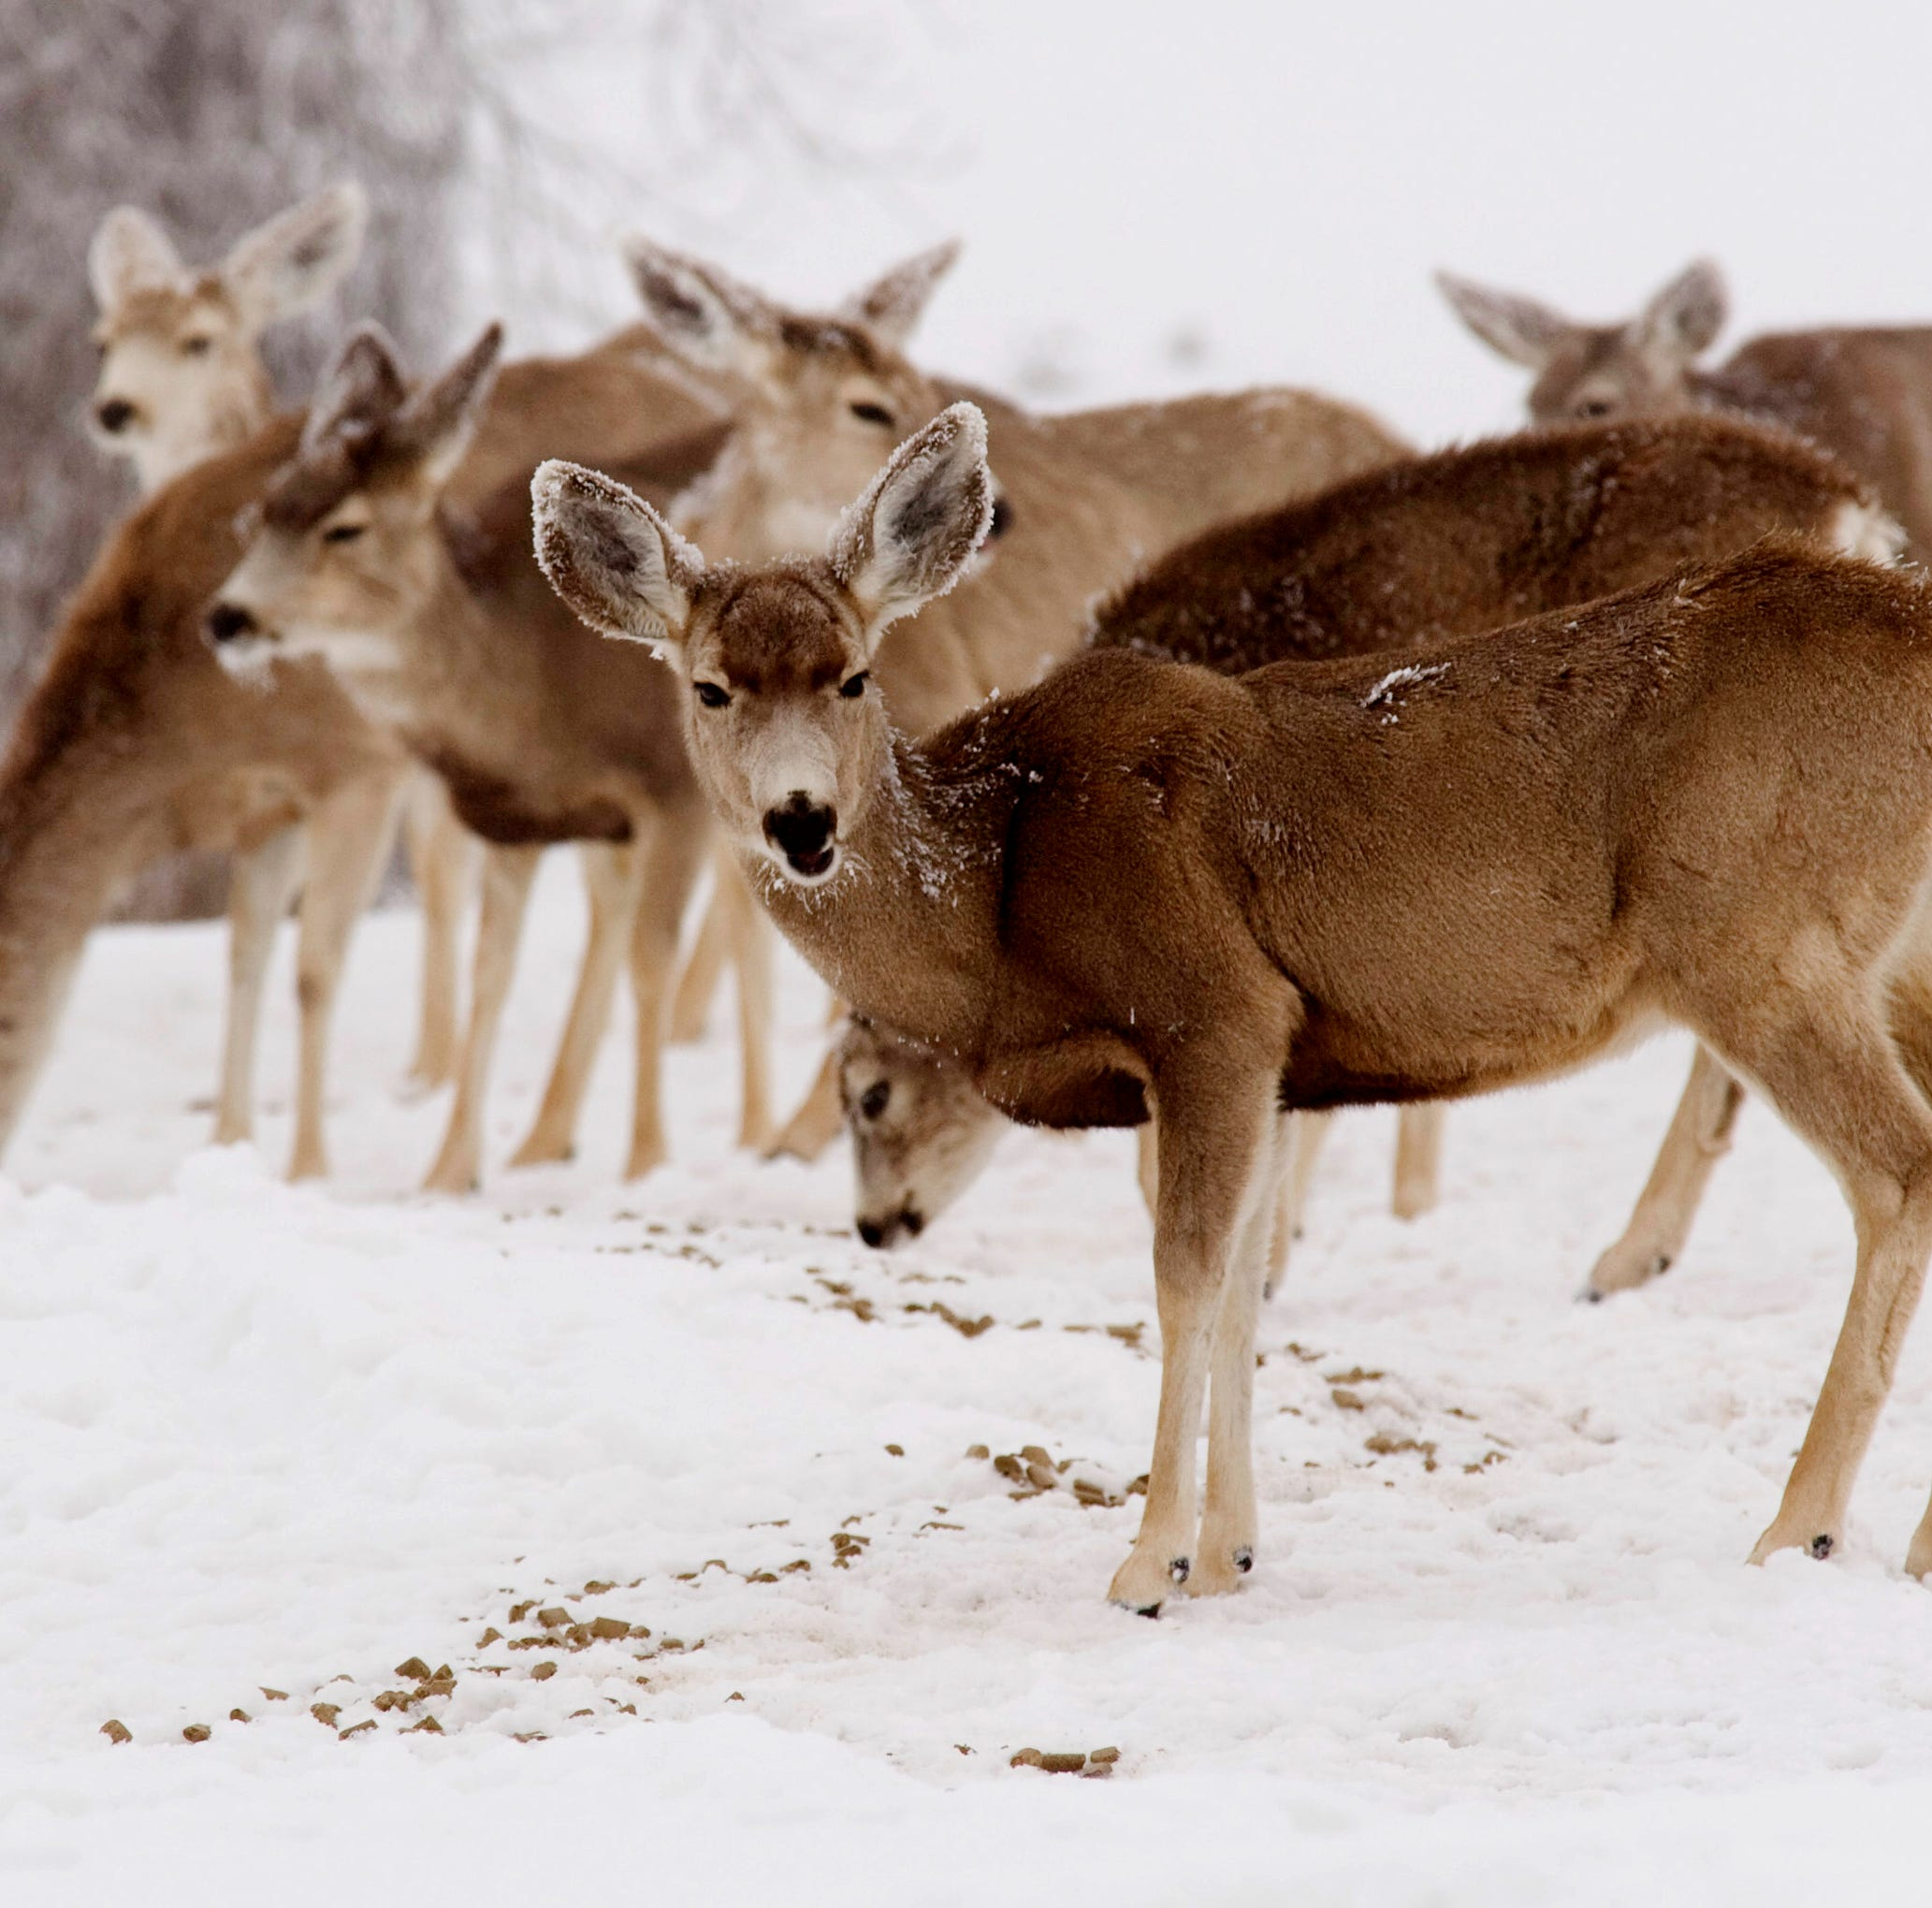 'Zombie' deer disease: Will deer with chronic wasting disease   attack humans?